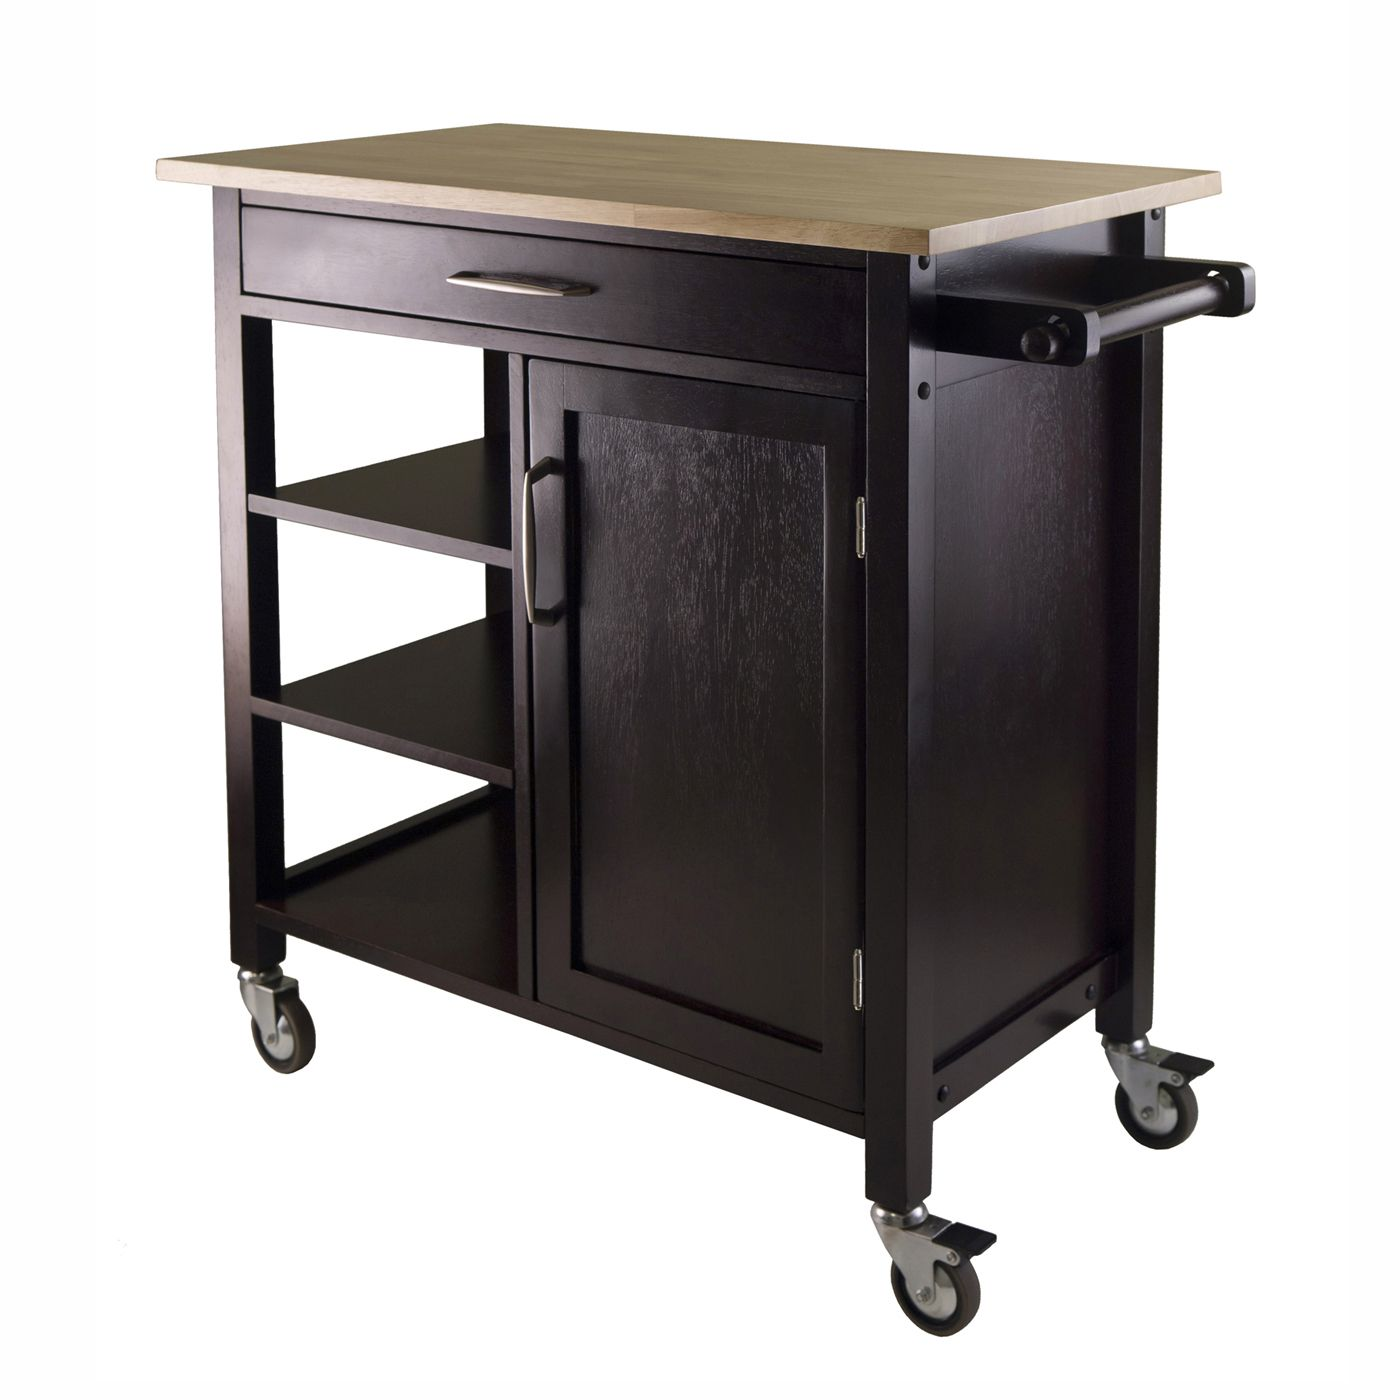 Black Kitchen Islands Lowes With Open Shelves And Single Drawer For Furniture Ideas